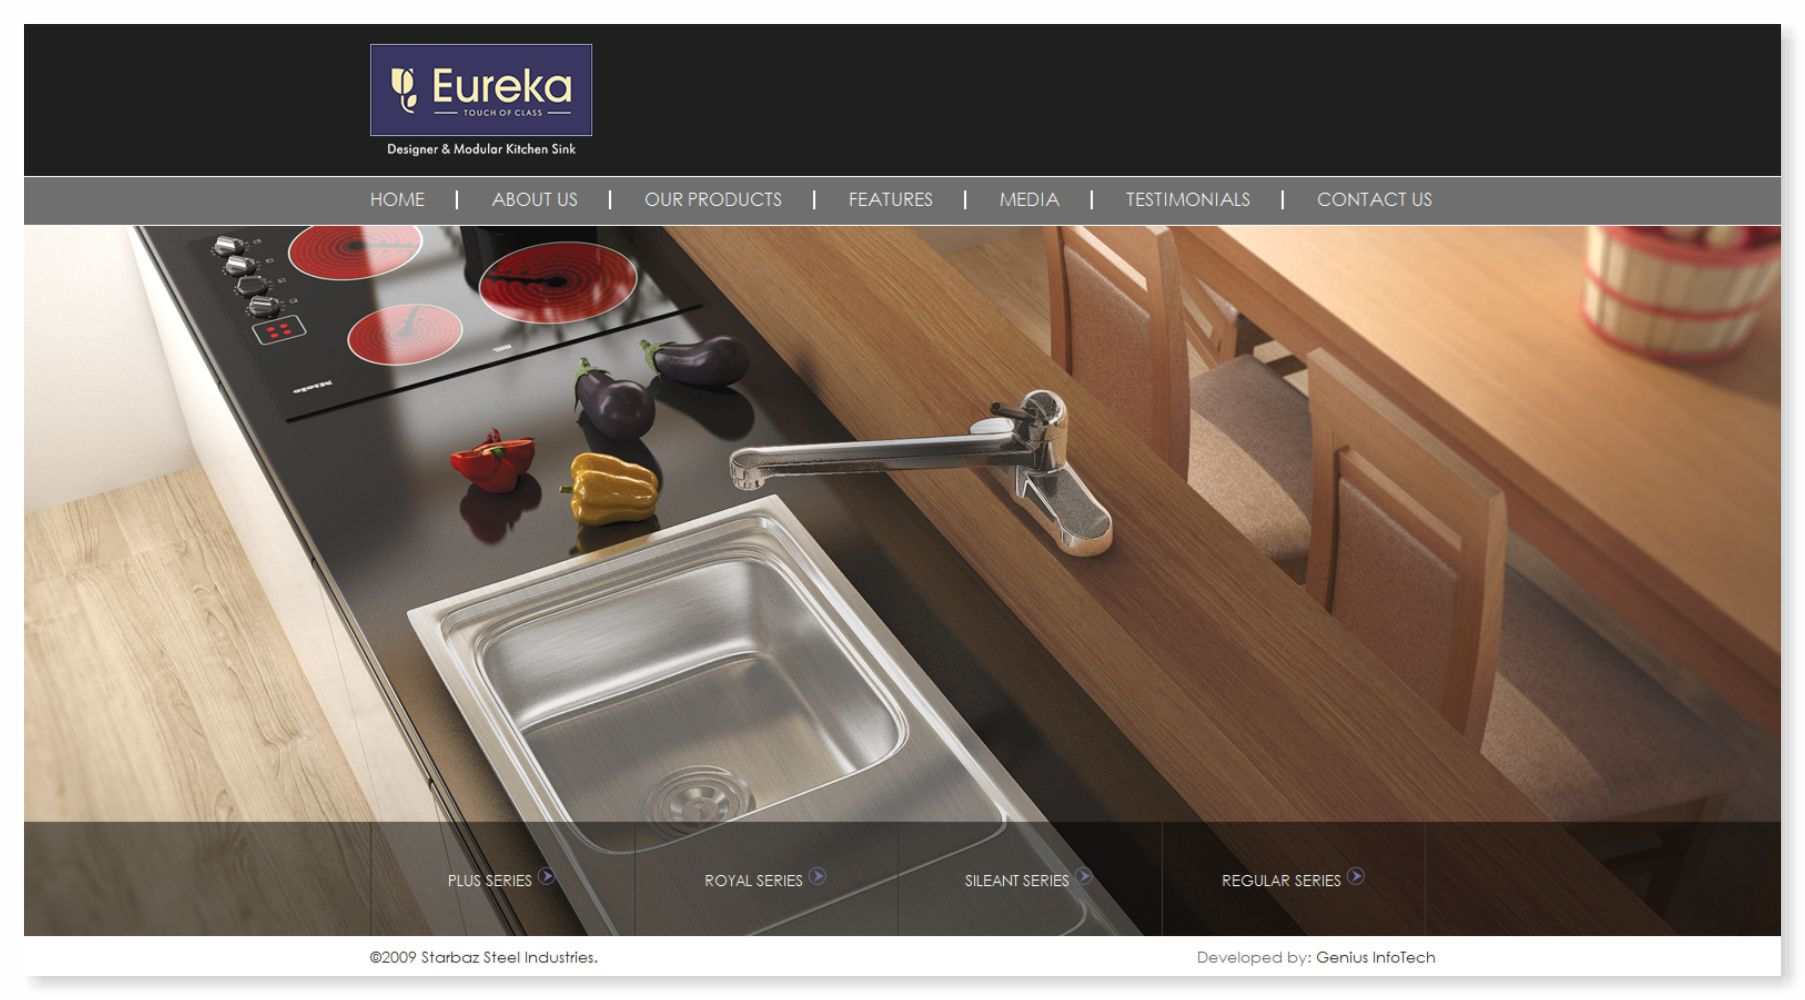 Eureka Sinks Website Design